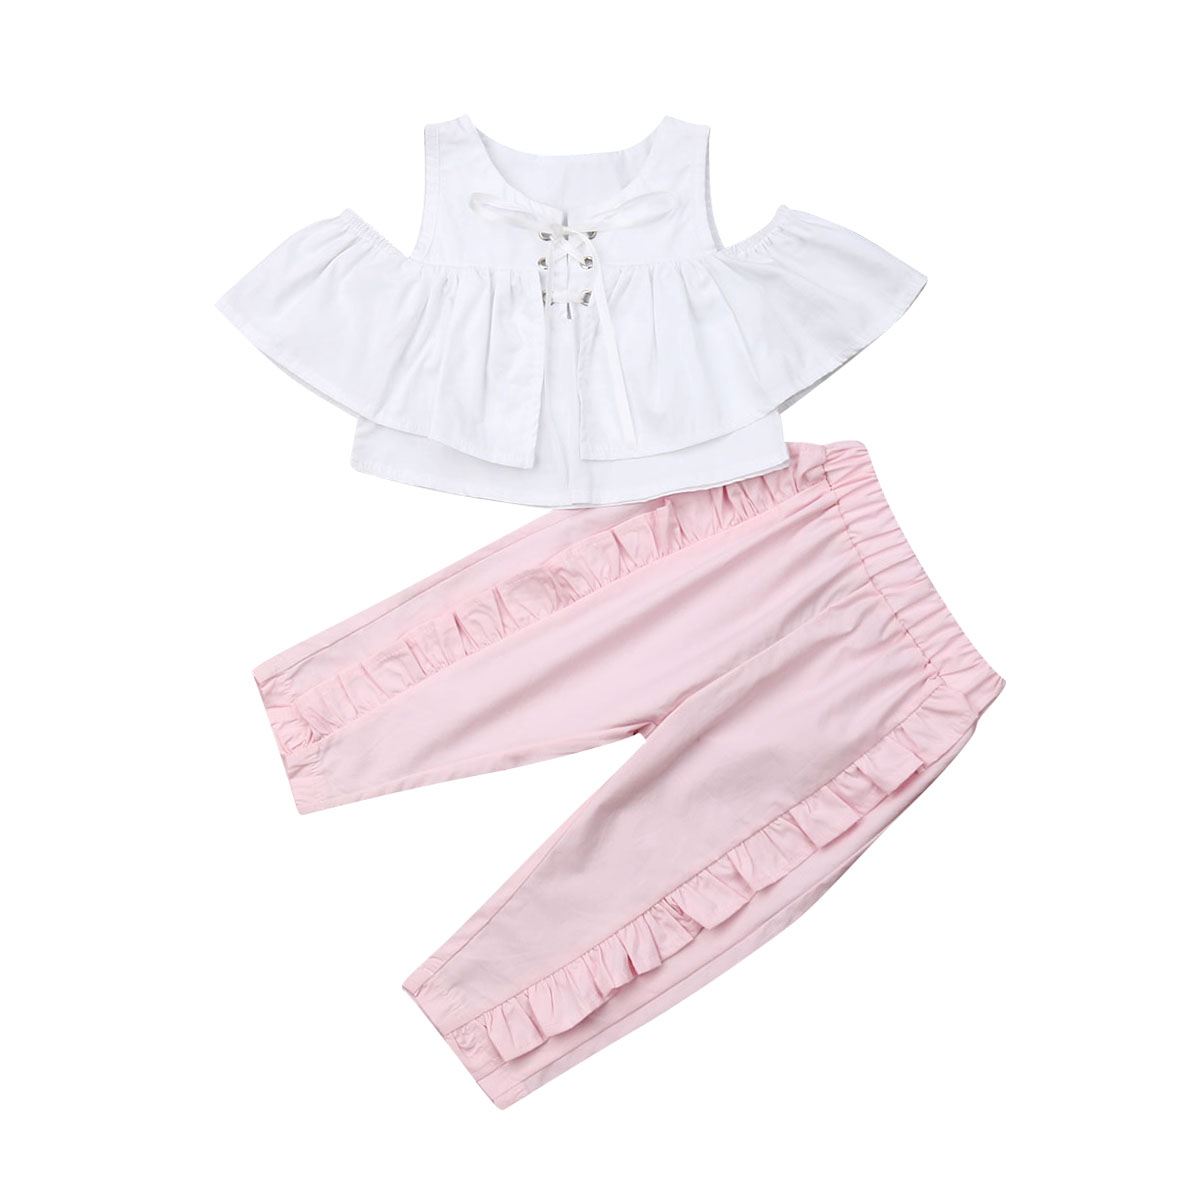 1-6Y Toddler Kid Girls Clothing Set White Ruffles Lace Up T Shirt Top + Pants Summer Children Girls Costumes